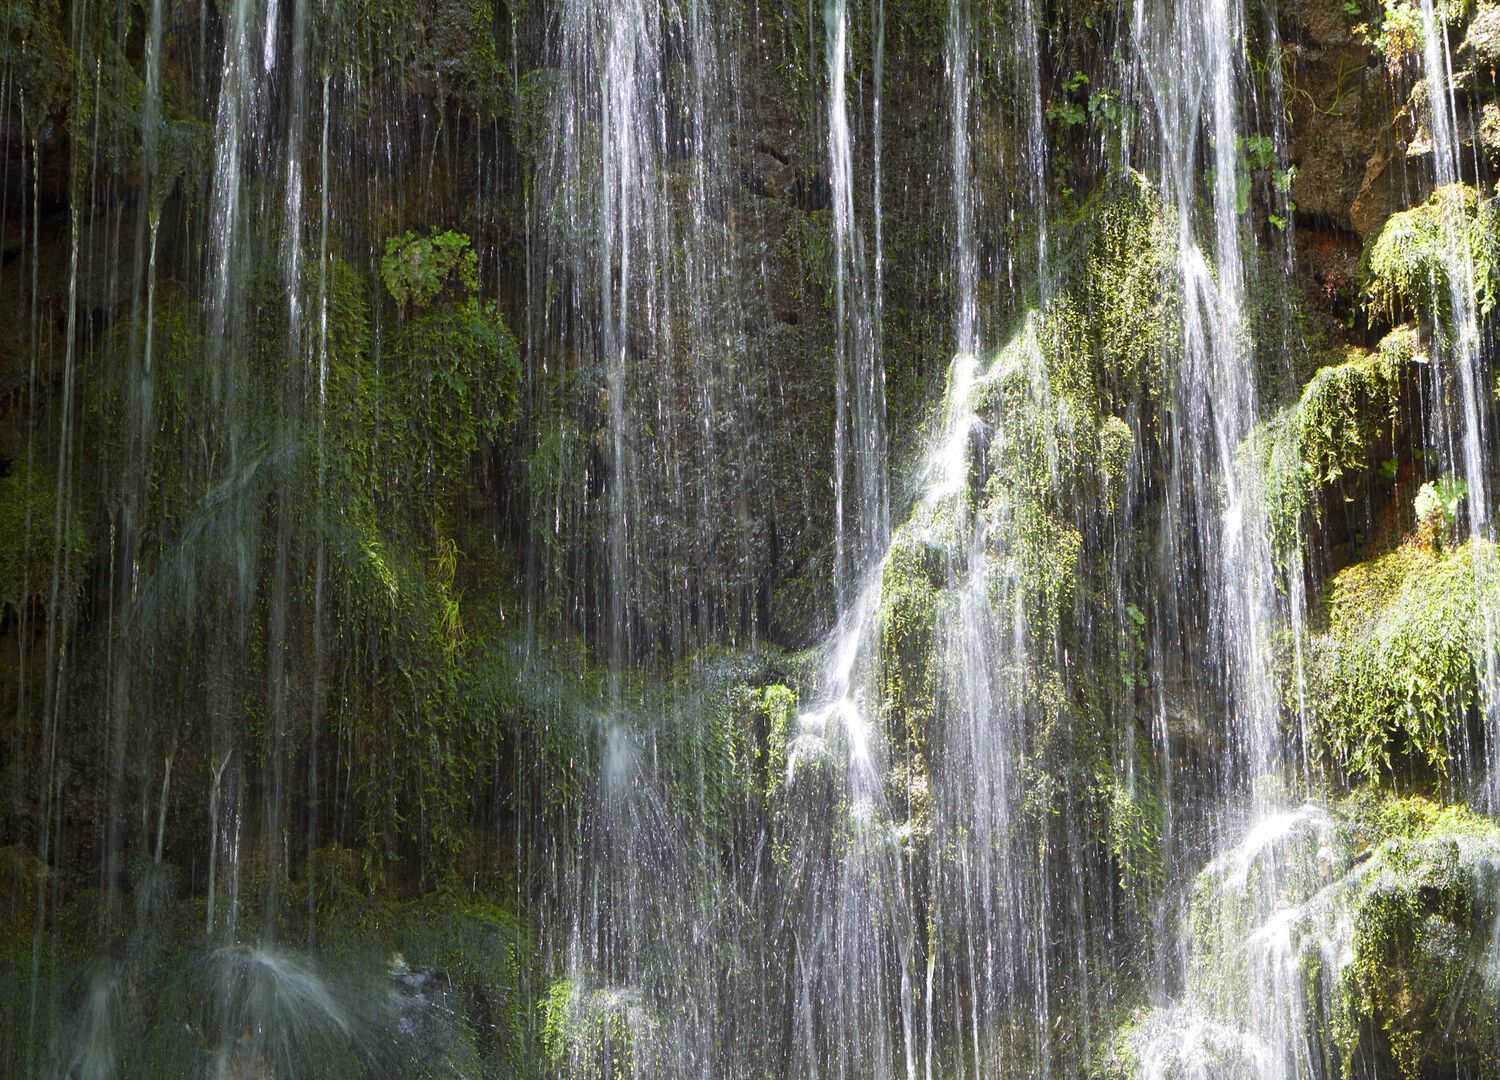 Waterfalls at Argiroupoli springs in Crete island Greece